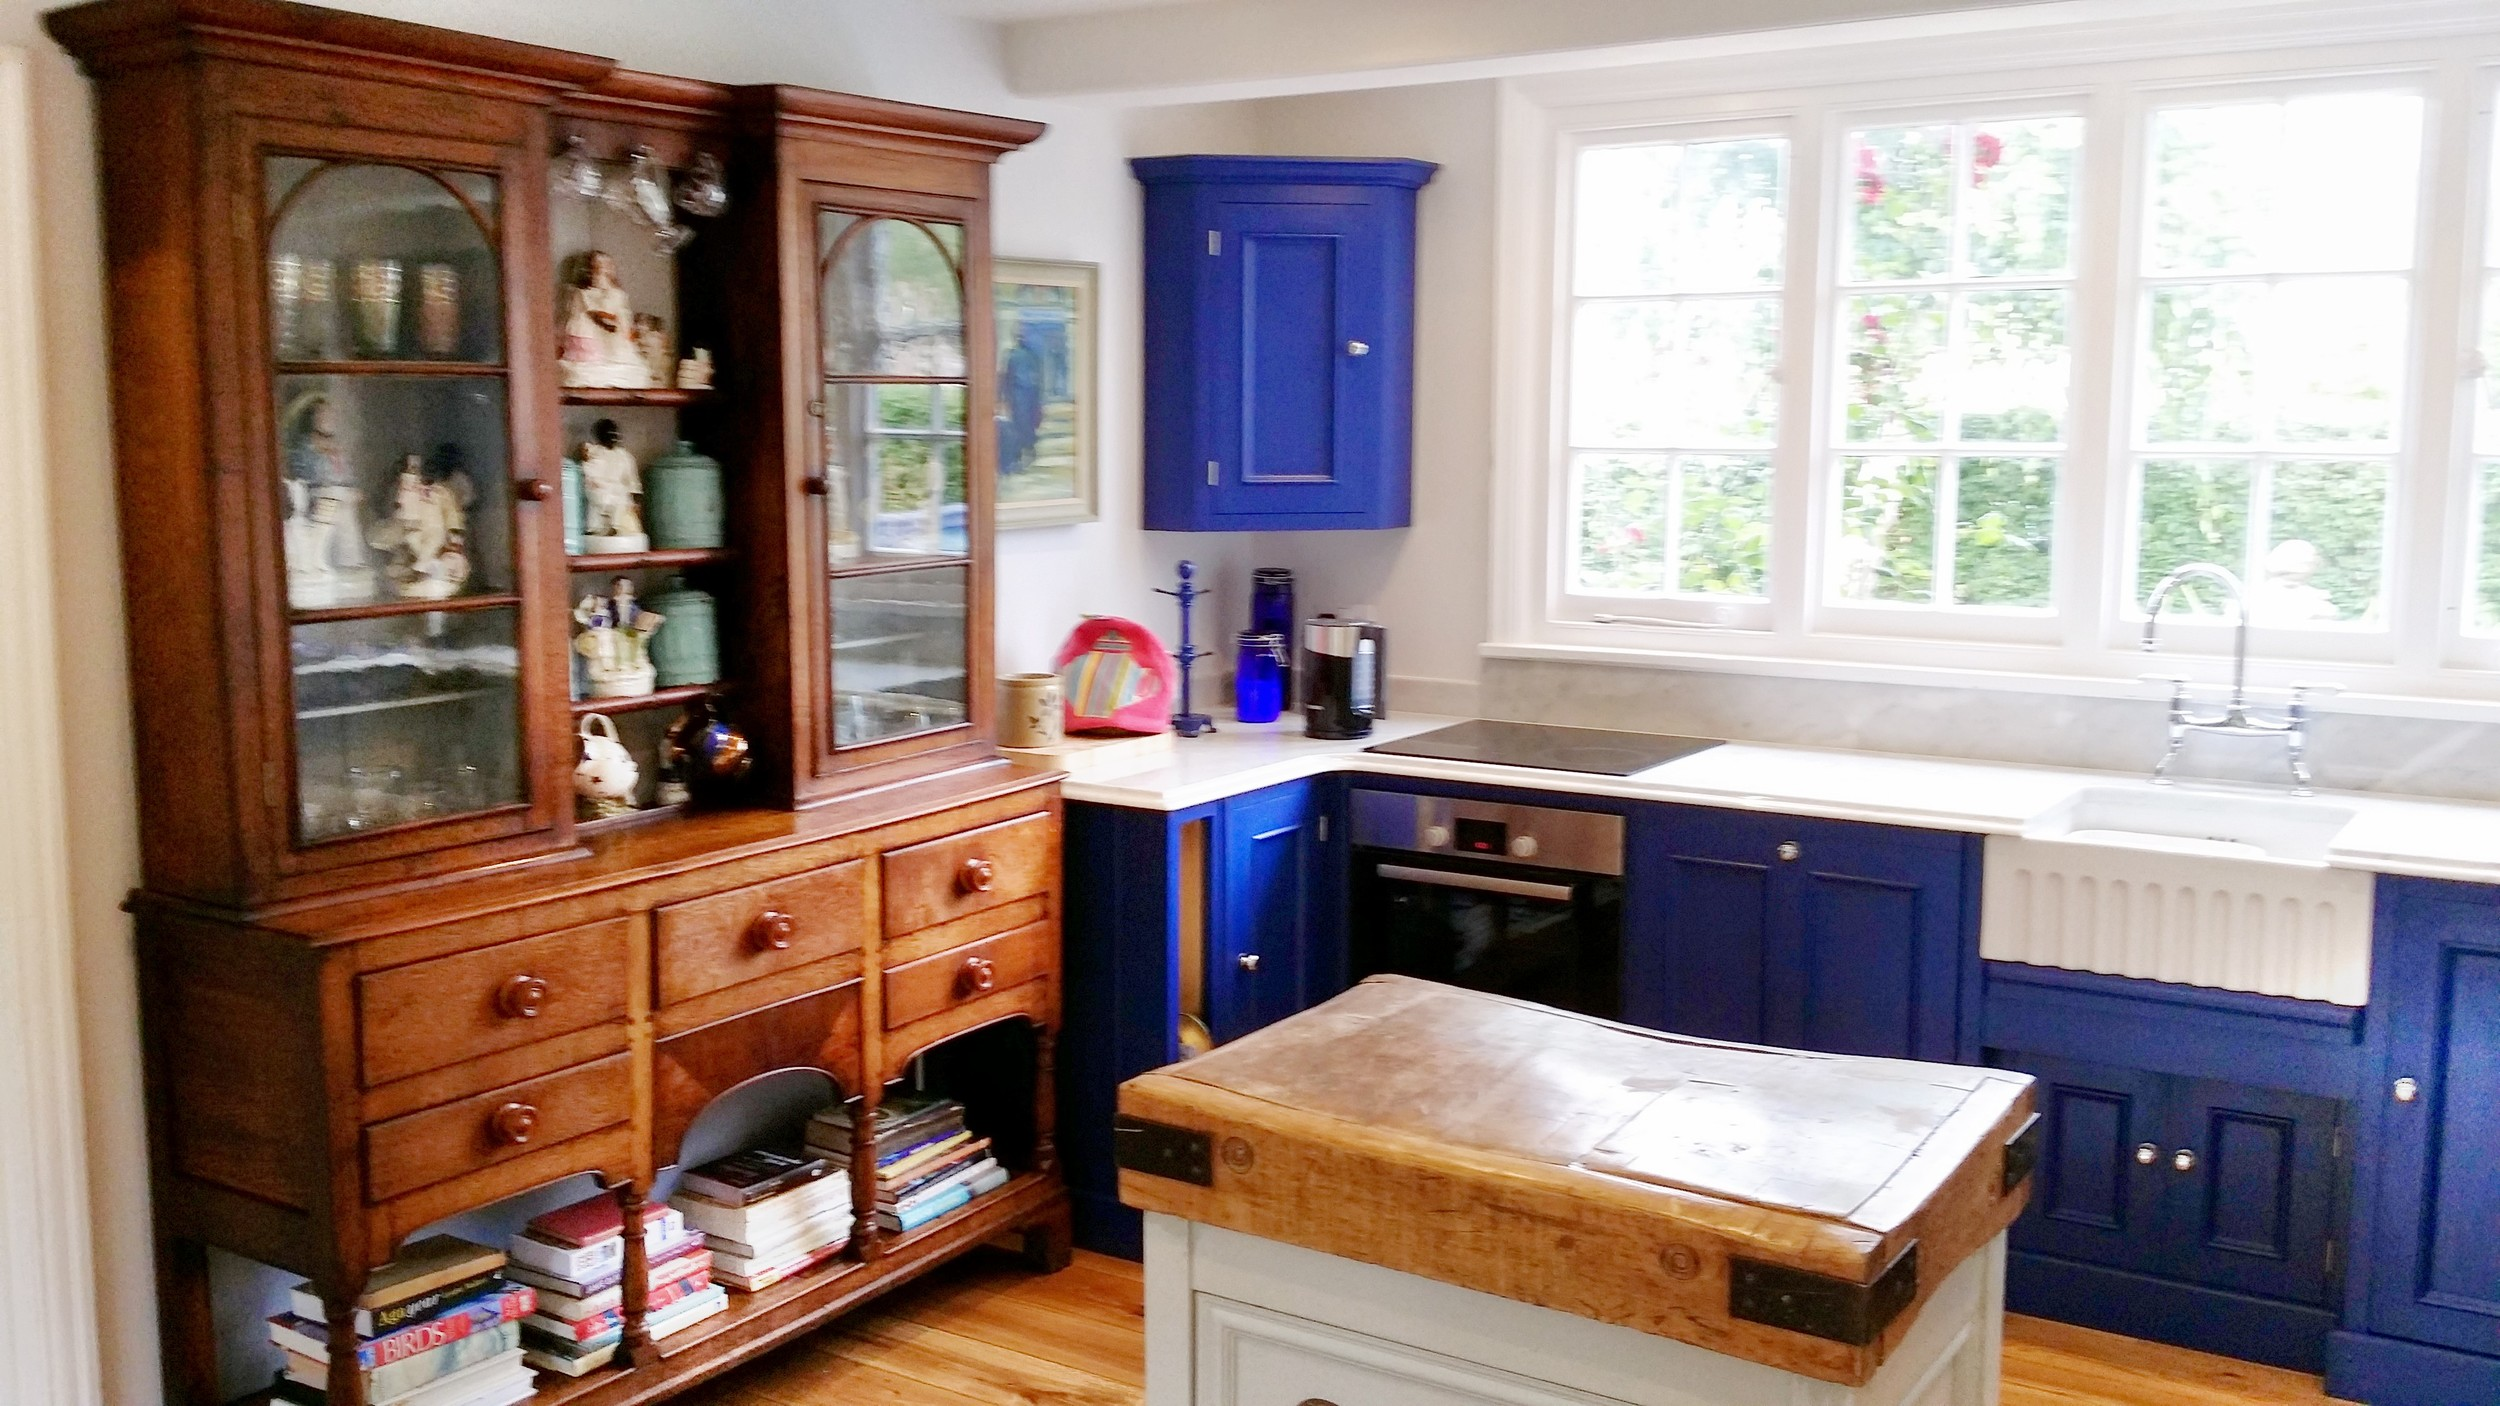 Kitchen butchers block and Georgian dresser